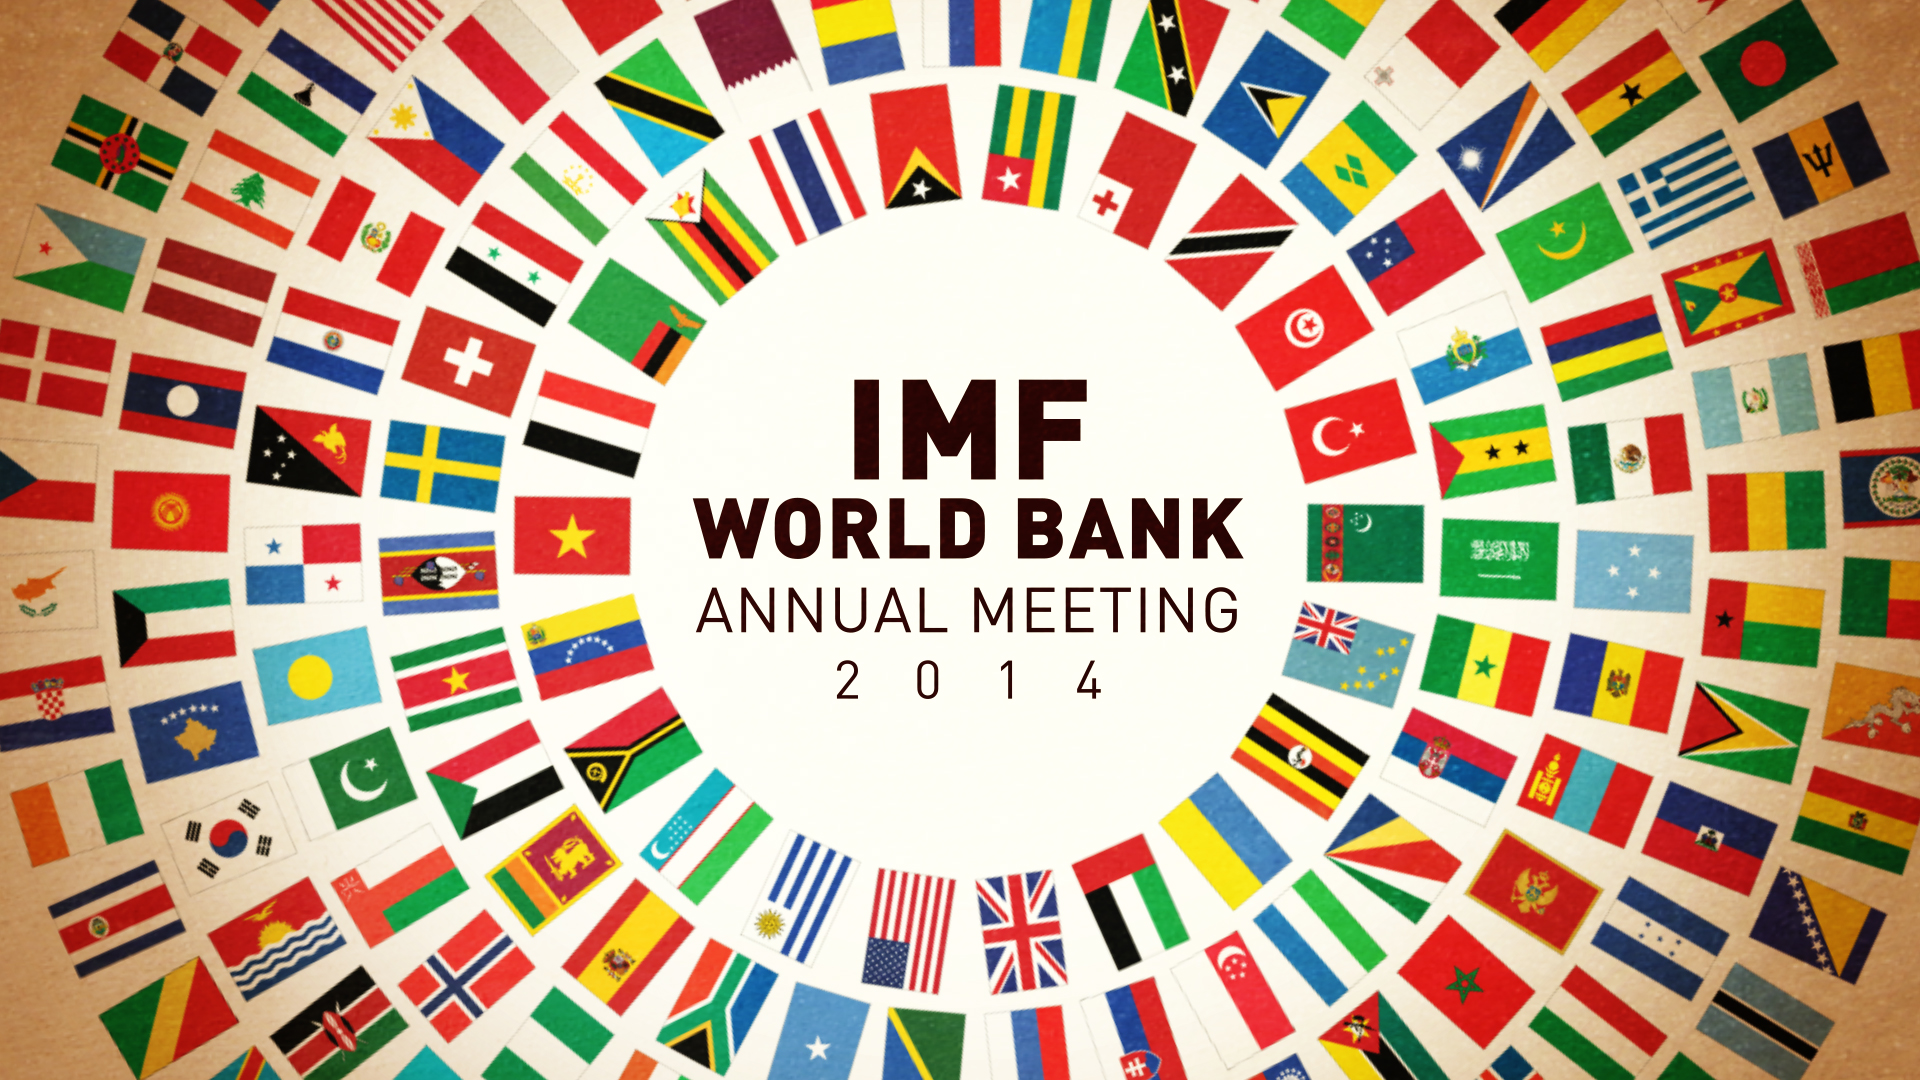 2014 IMF World Bank Annual Meeting